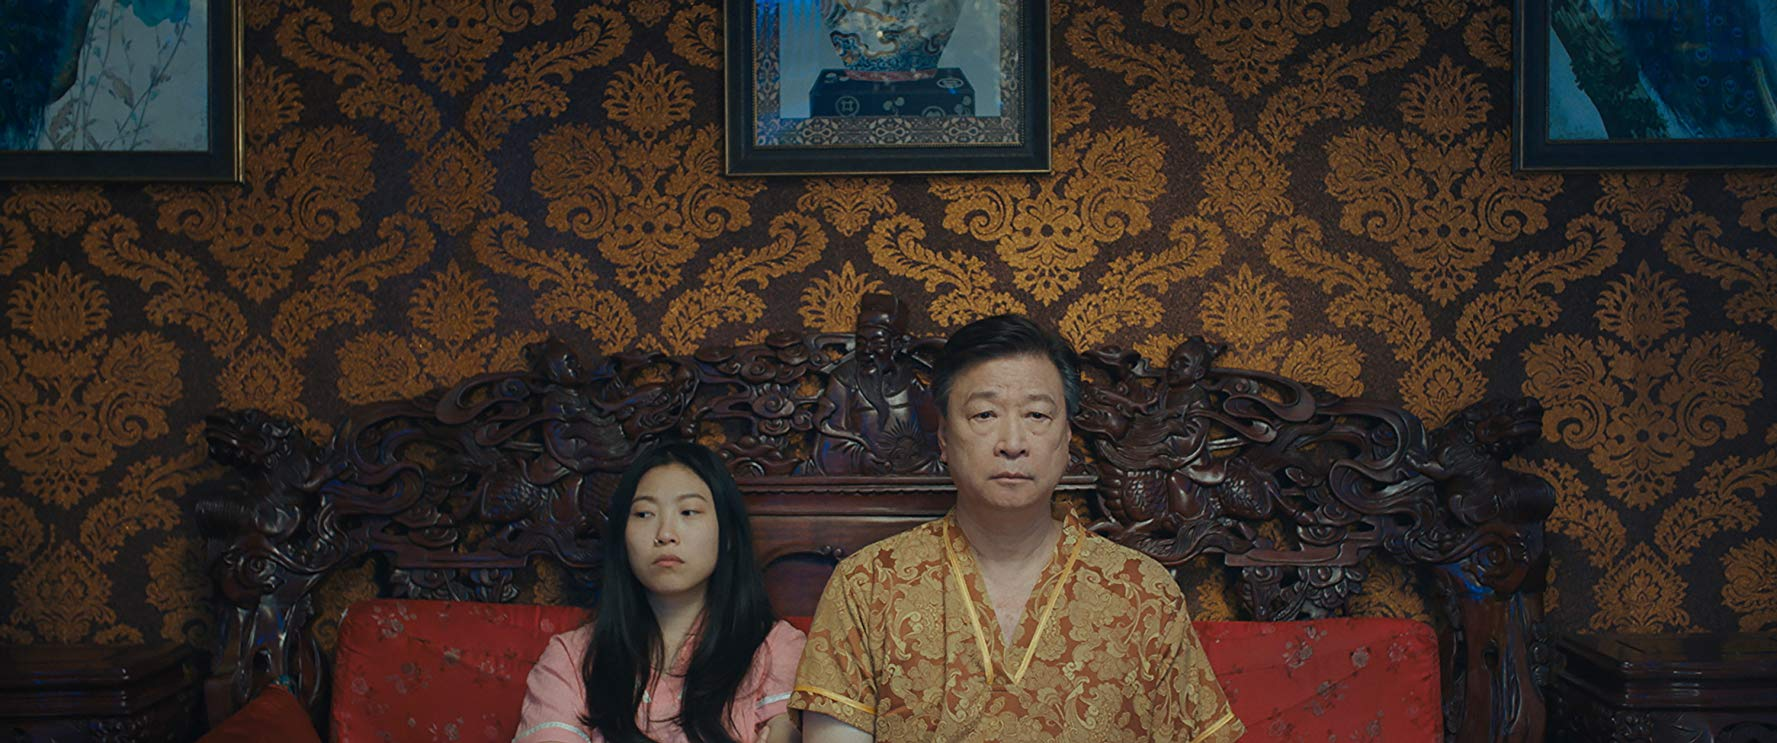 Awkwafina and Tzi Ma in The Farewell (2019)